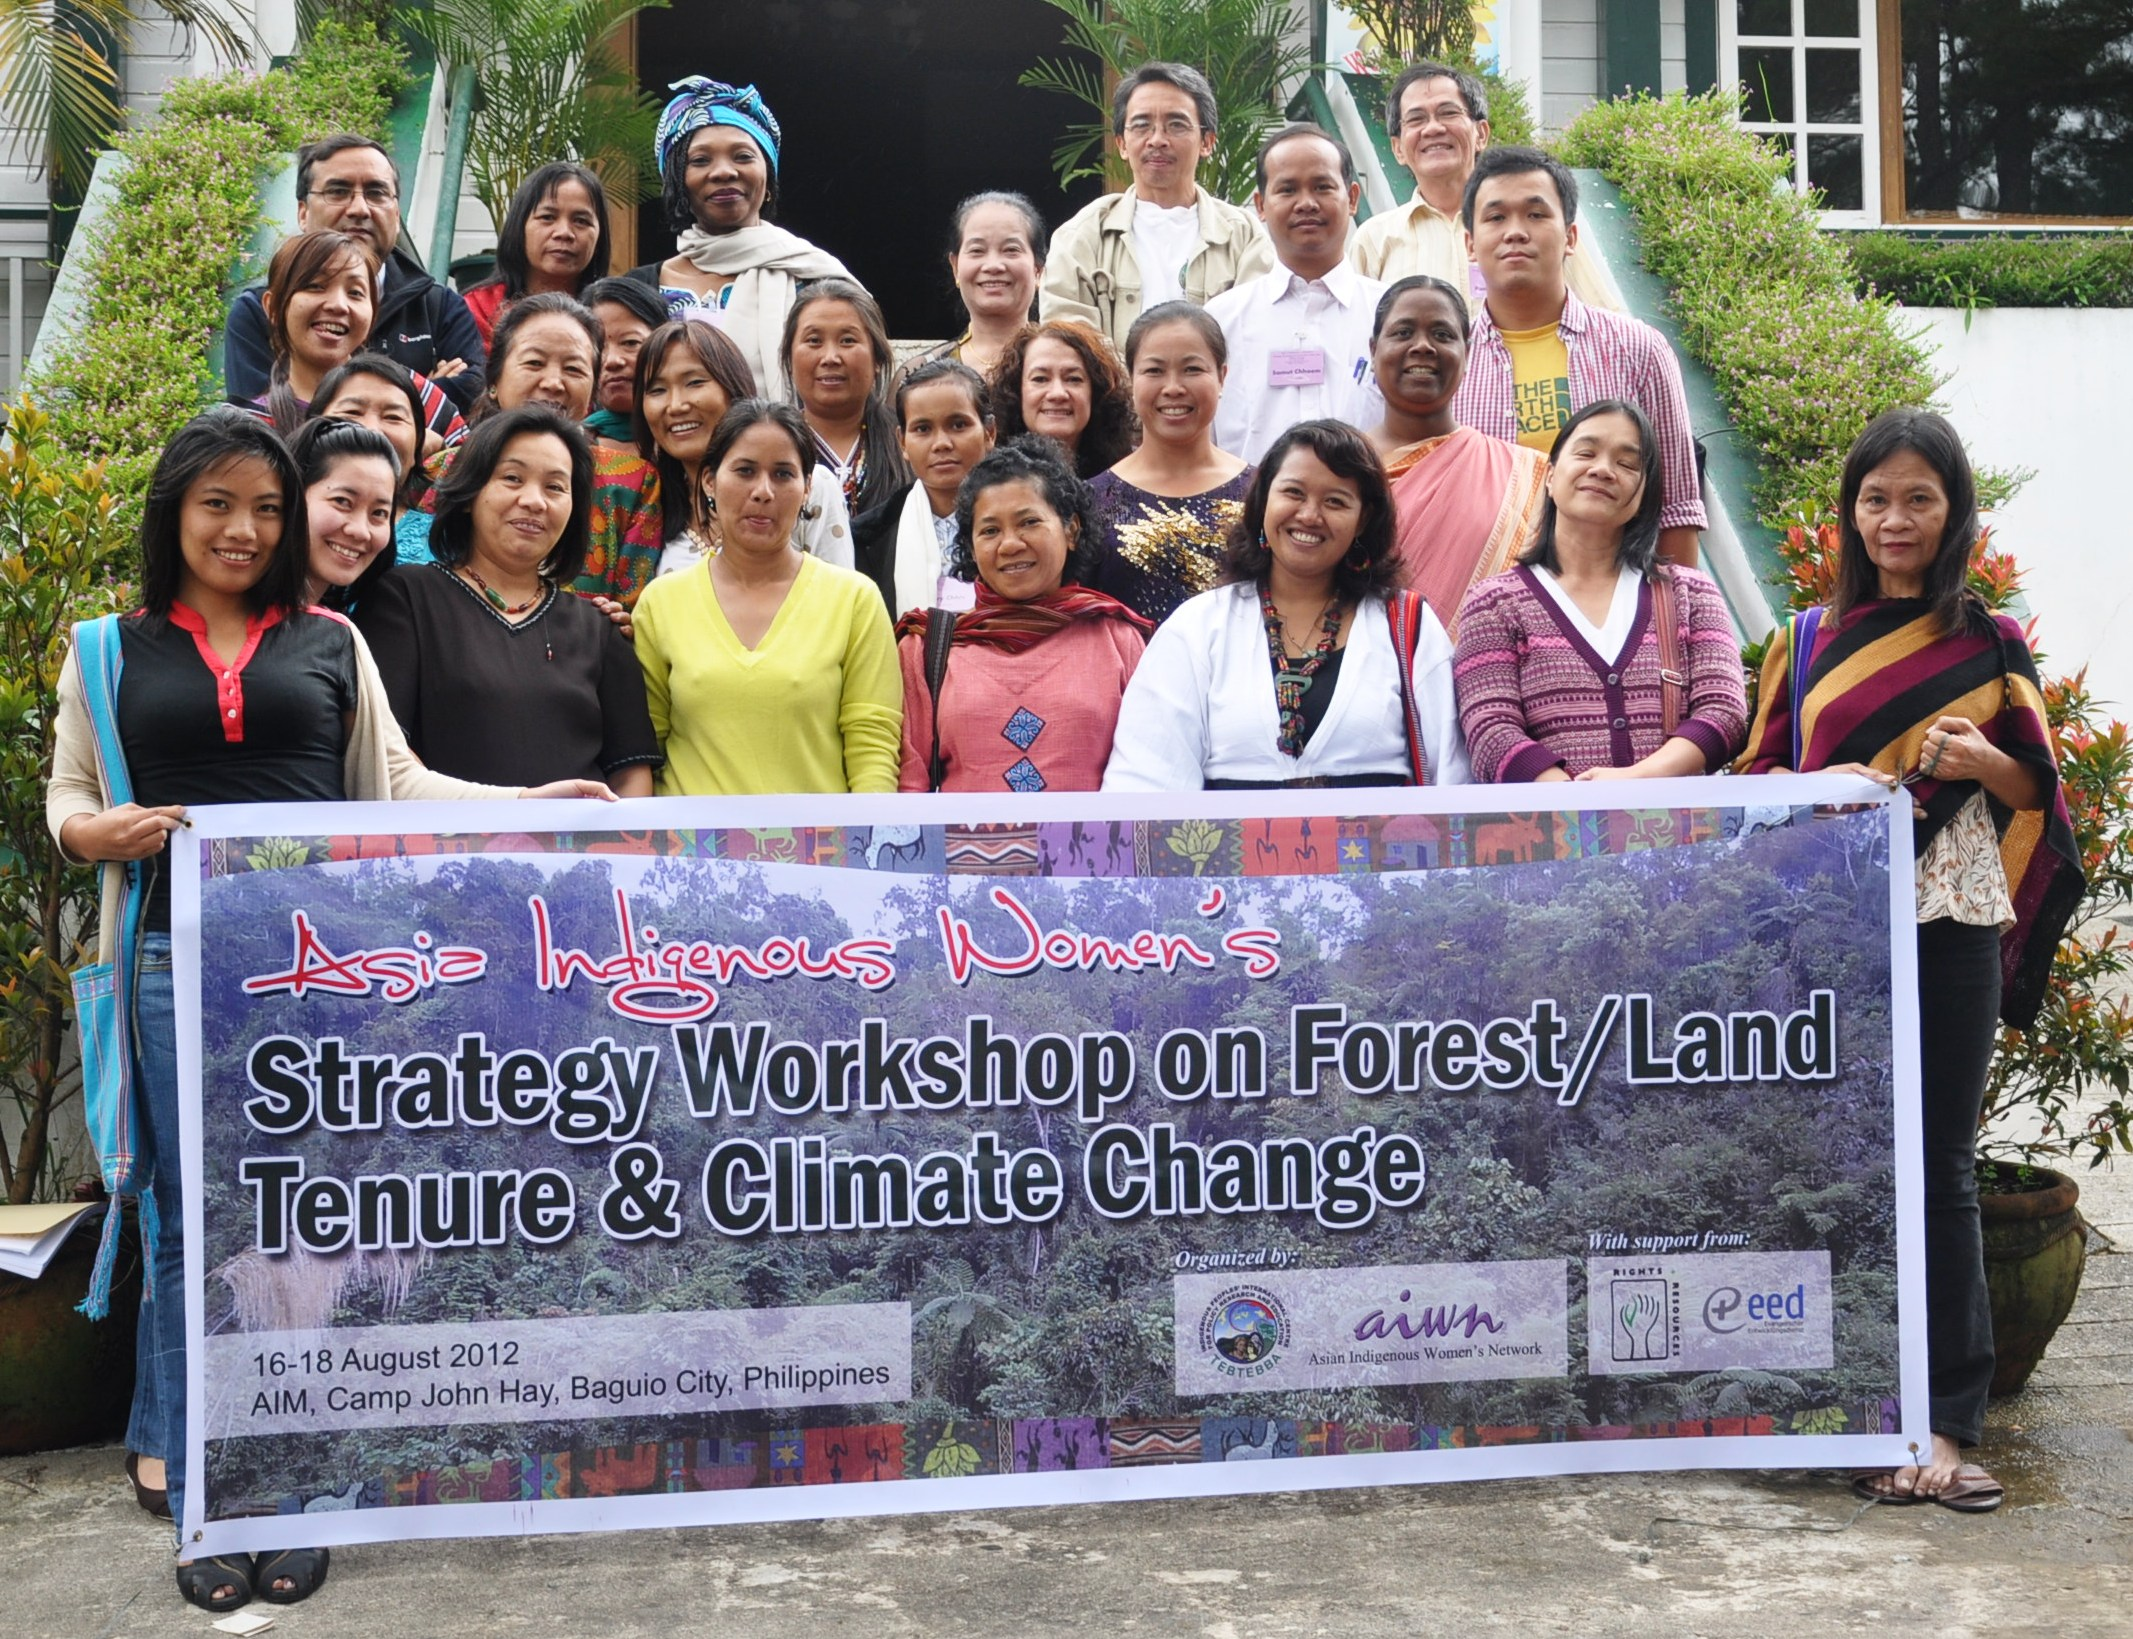 Asian Indigenous Women's Strategy Workshop on Forest/Land Tenure and Climate Change